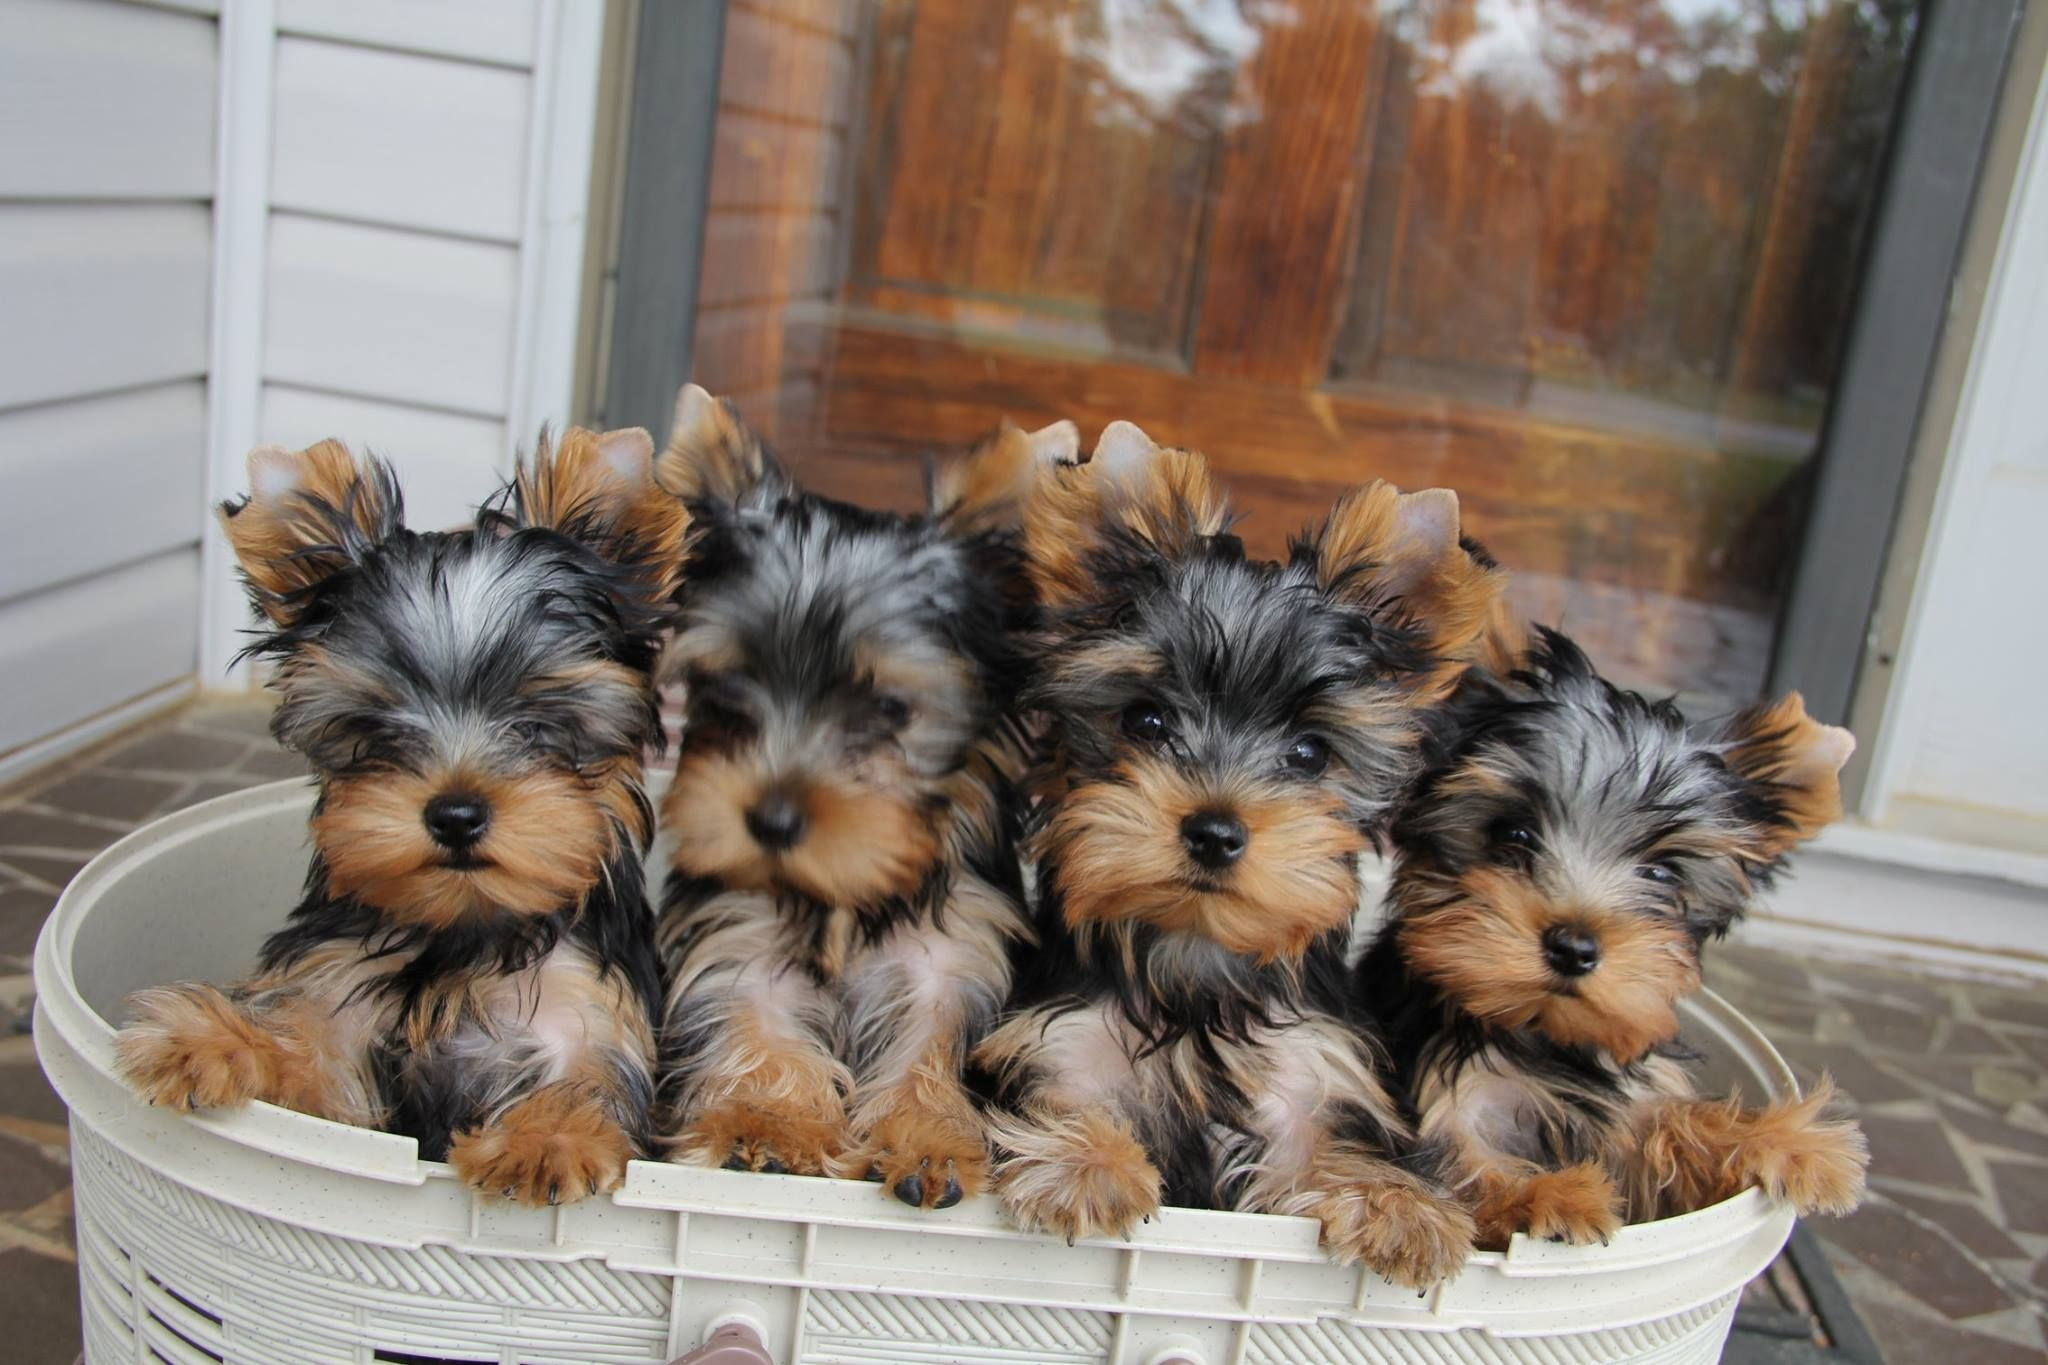 Surprise Dogs Pets Yorkshireterriers Puppies Facebook Com Sodoggonefunny Yorkshire Terrier Dog Yorkie Puppy Poodle Puppy